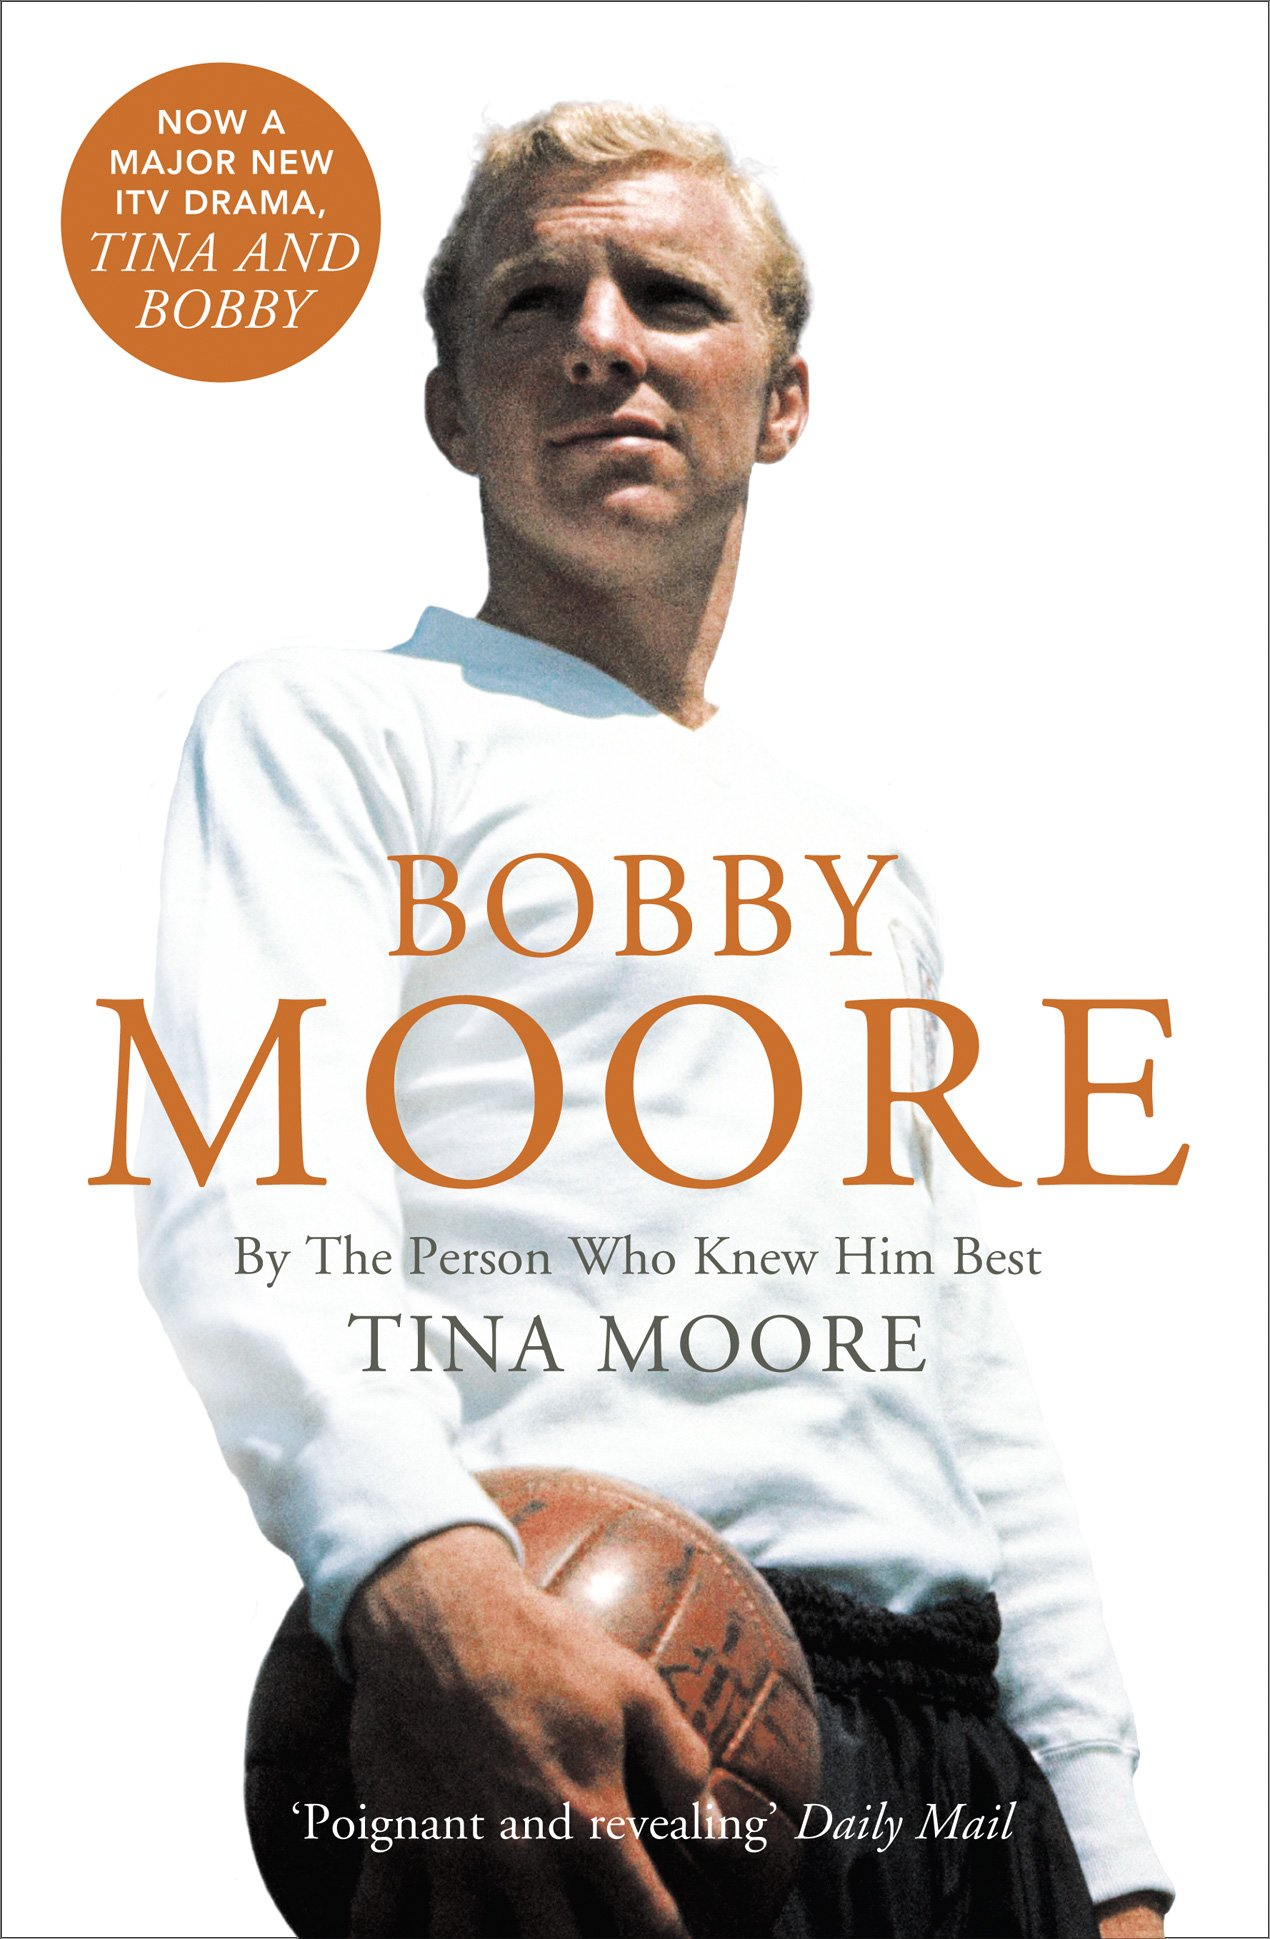 Bobby Moore By the Person Who Knew Him Best Amazon Tina